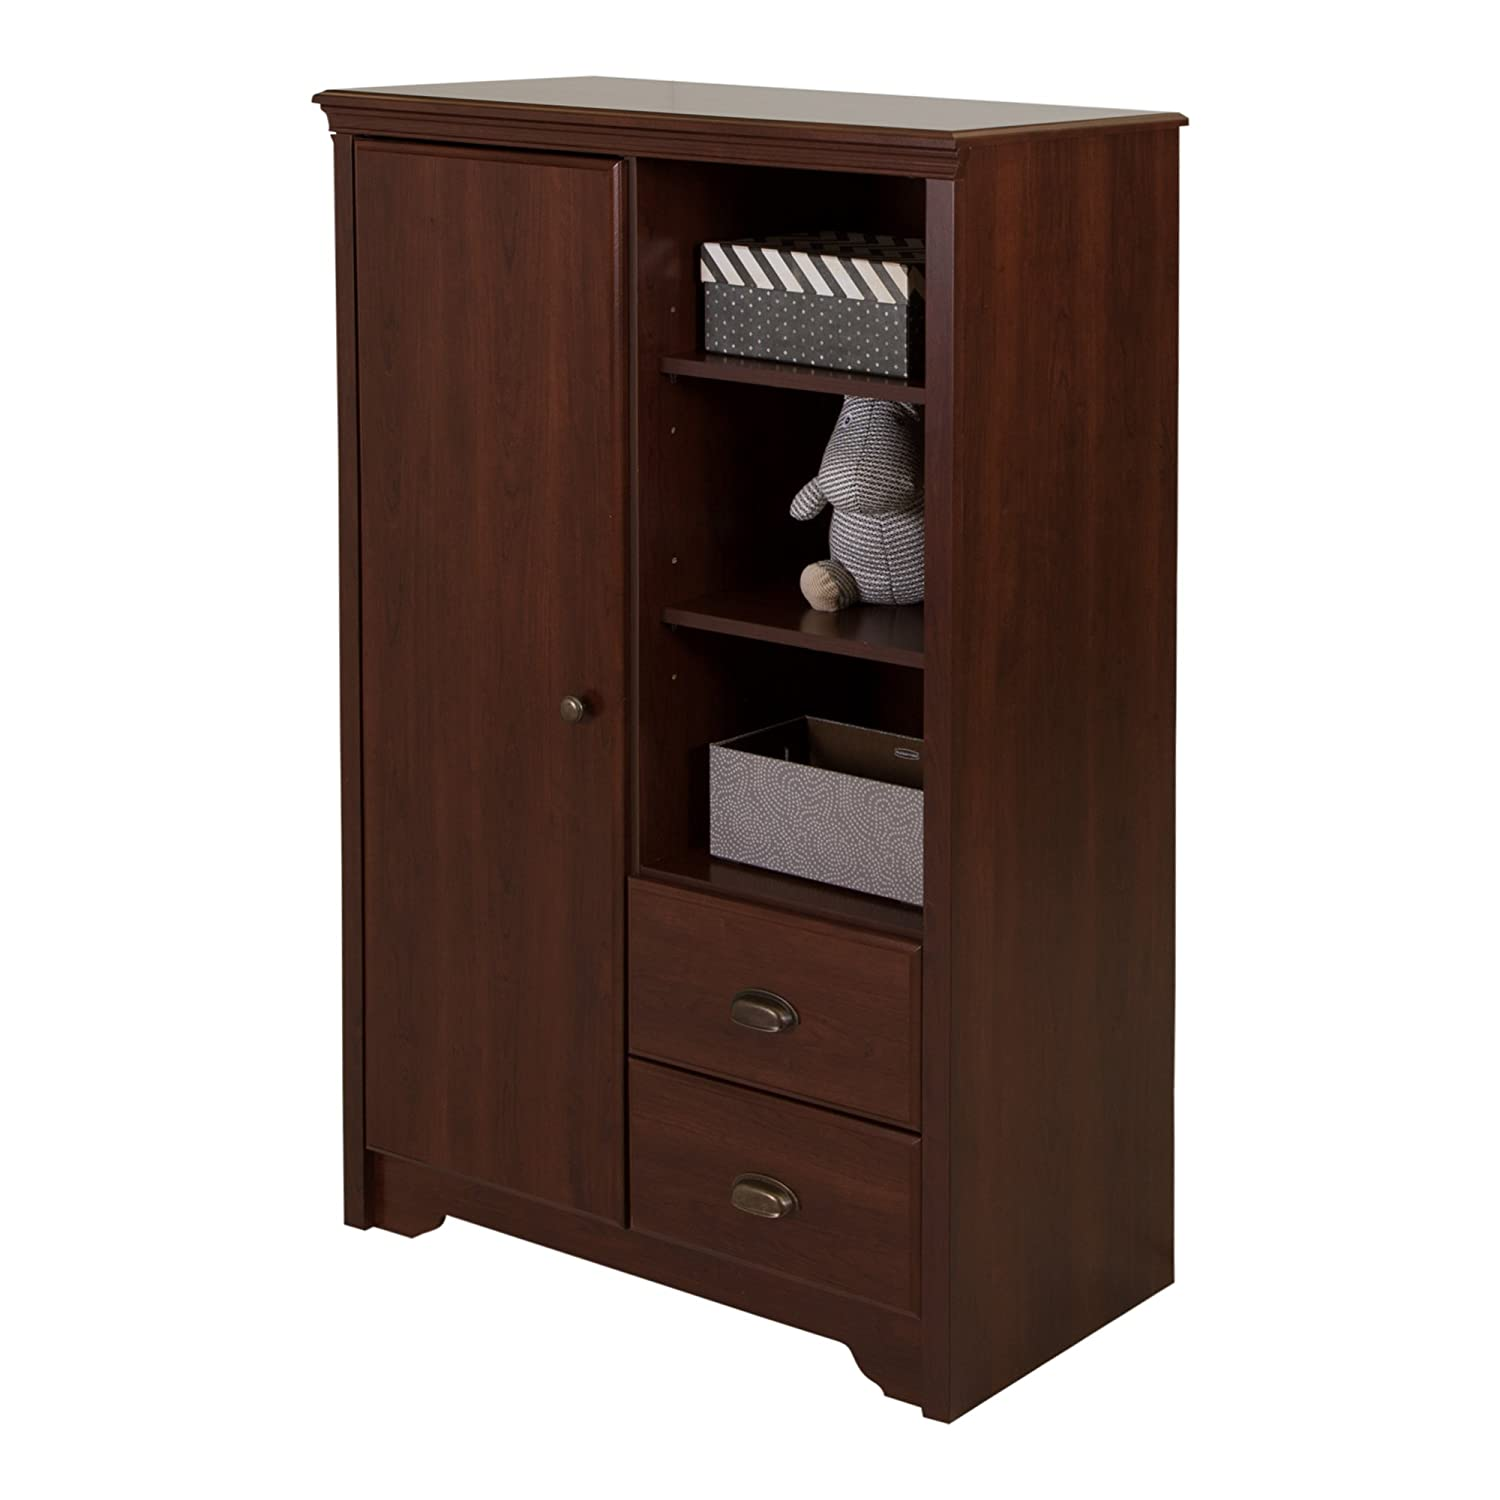 South Shore Fundy Tide Armoire with Drawers, Royal Cherry 9022038